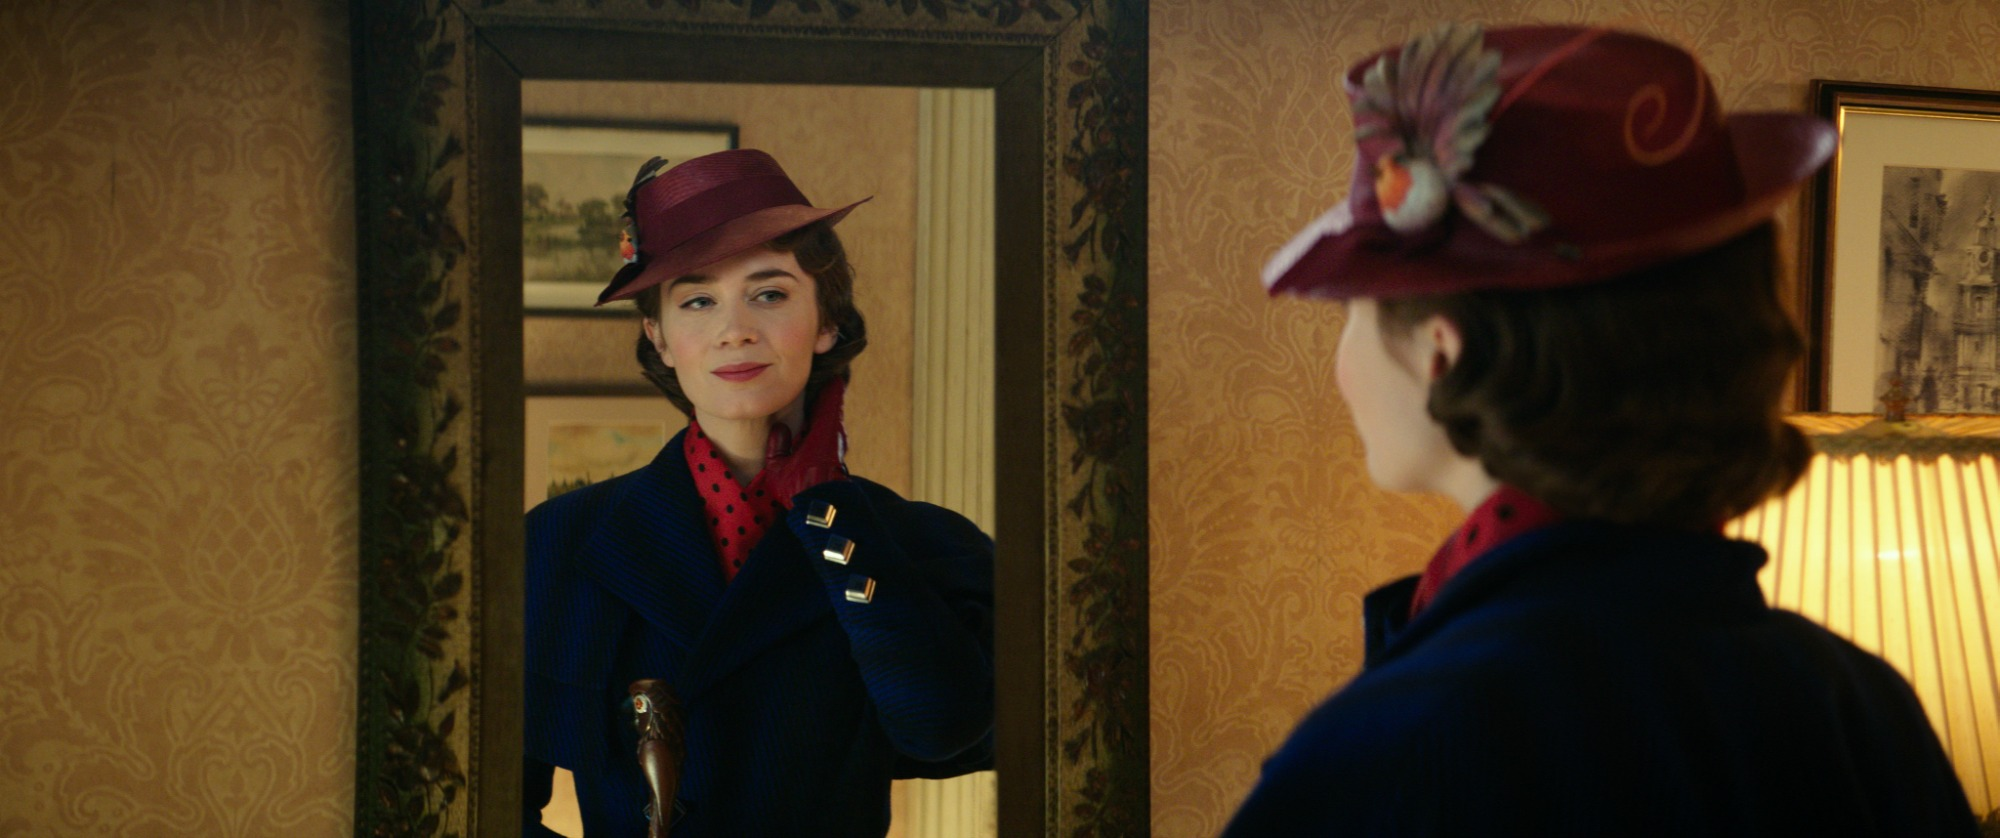 Mary Poppins Returns Still 1